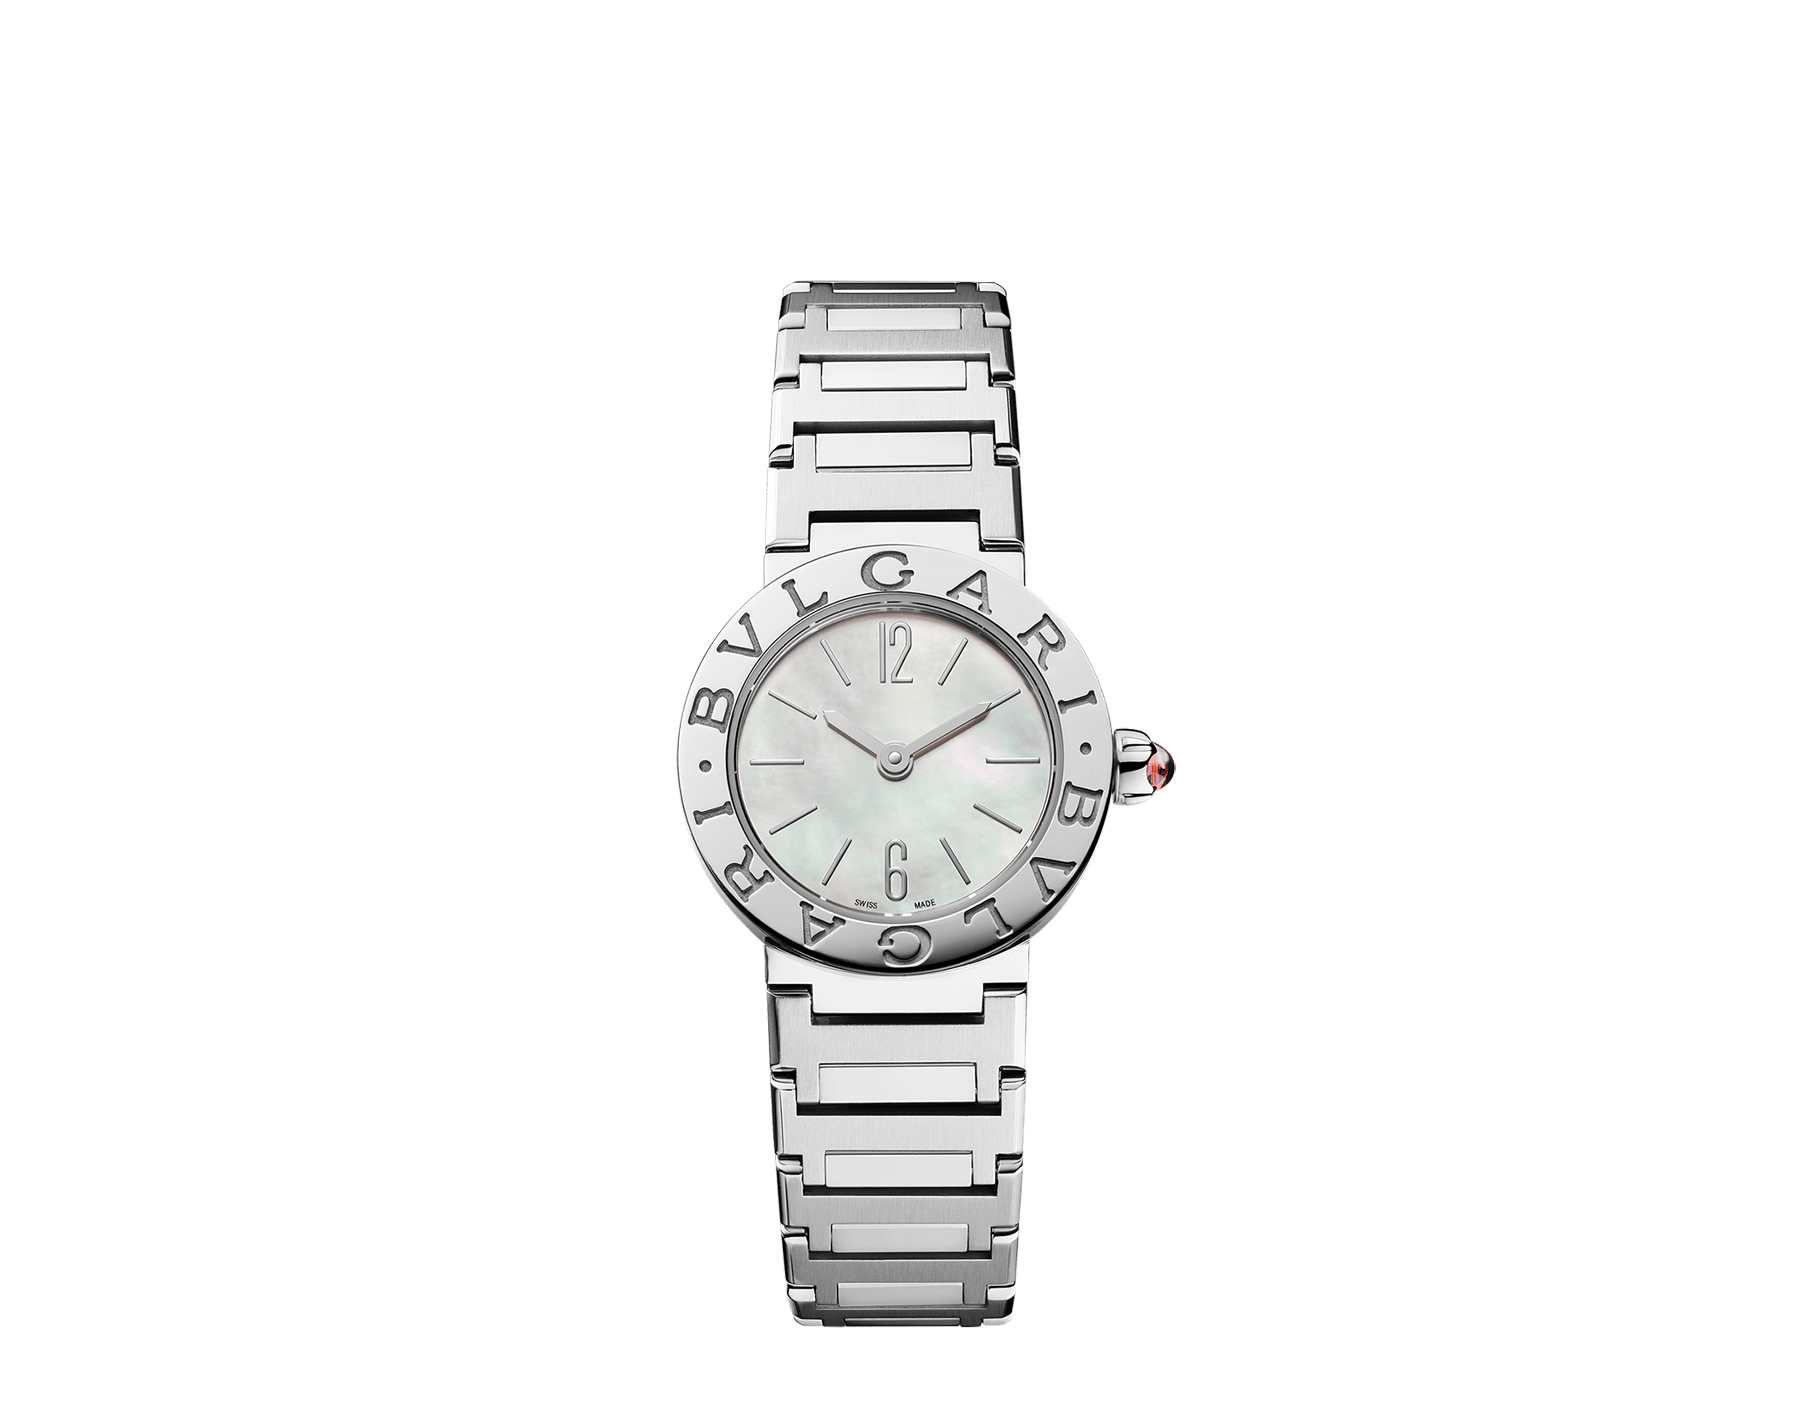 BVLGARI BVLGARI watch in stainless steel case and bracelet, stainless steel bezel engraved with double logo and mother-of-pearl dial 103217 image 1